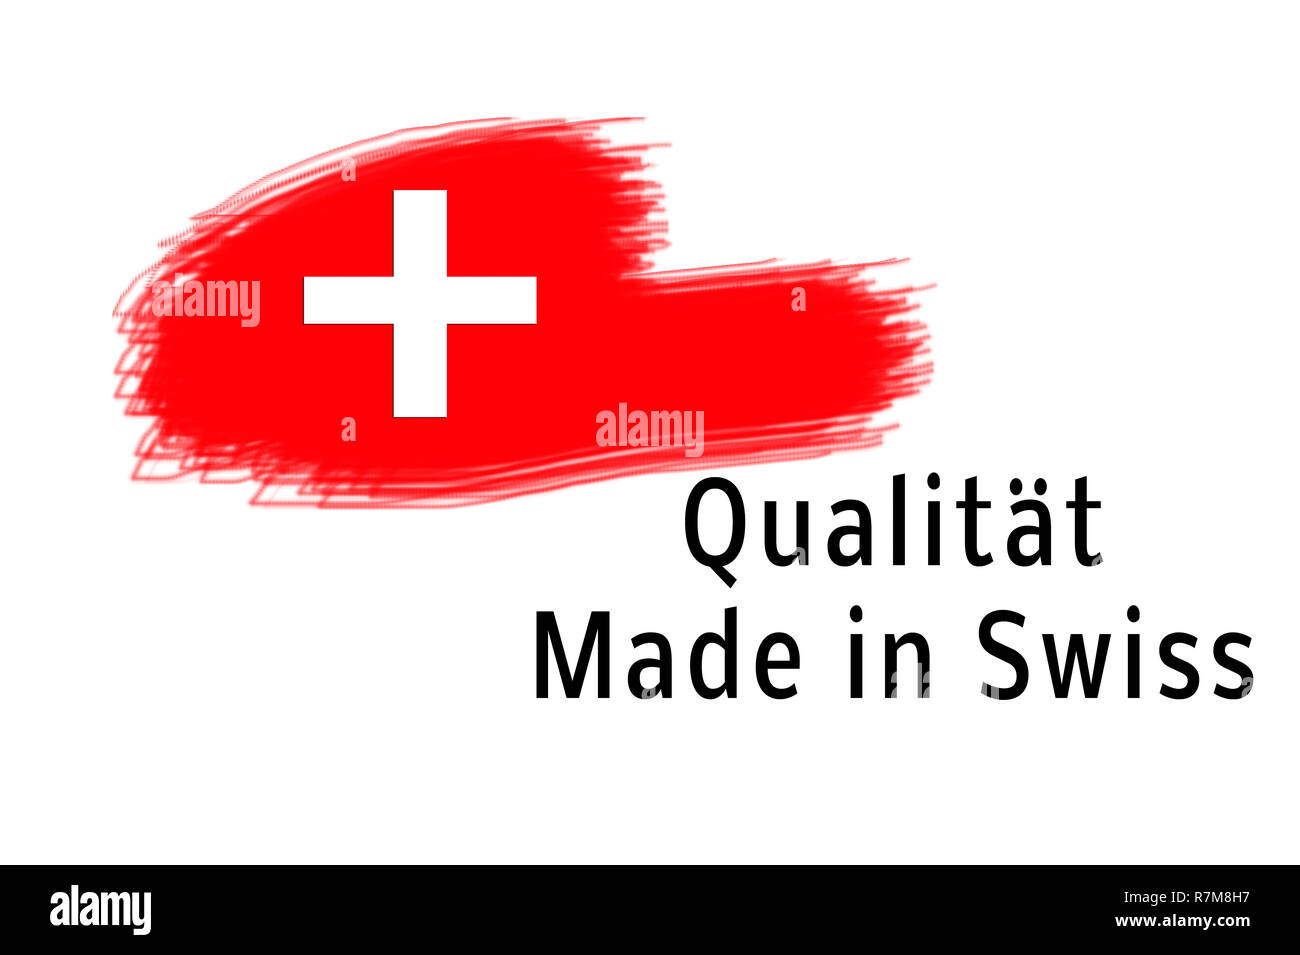 Quality Made in Swiss - Stock Image